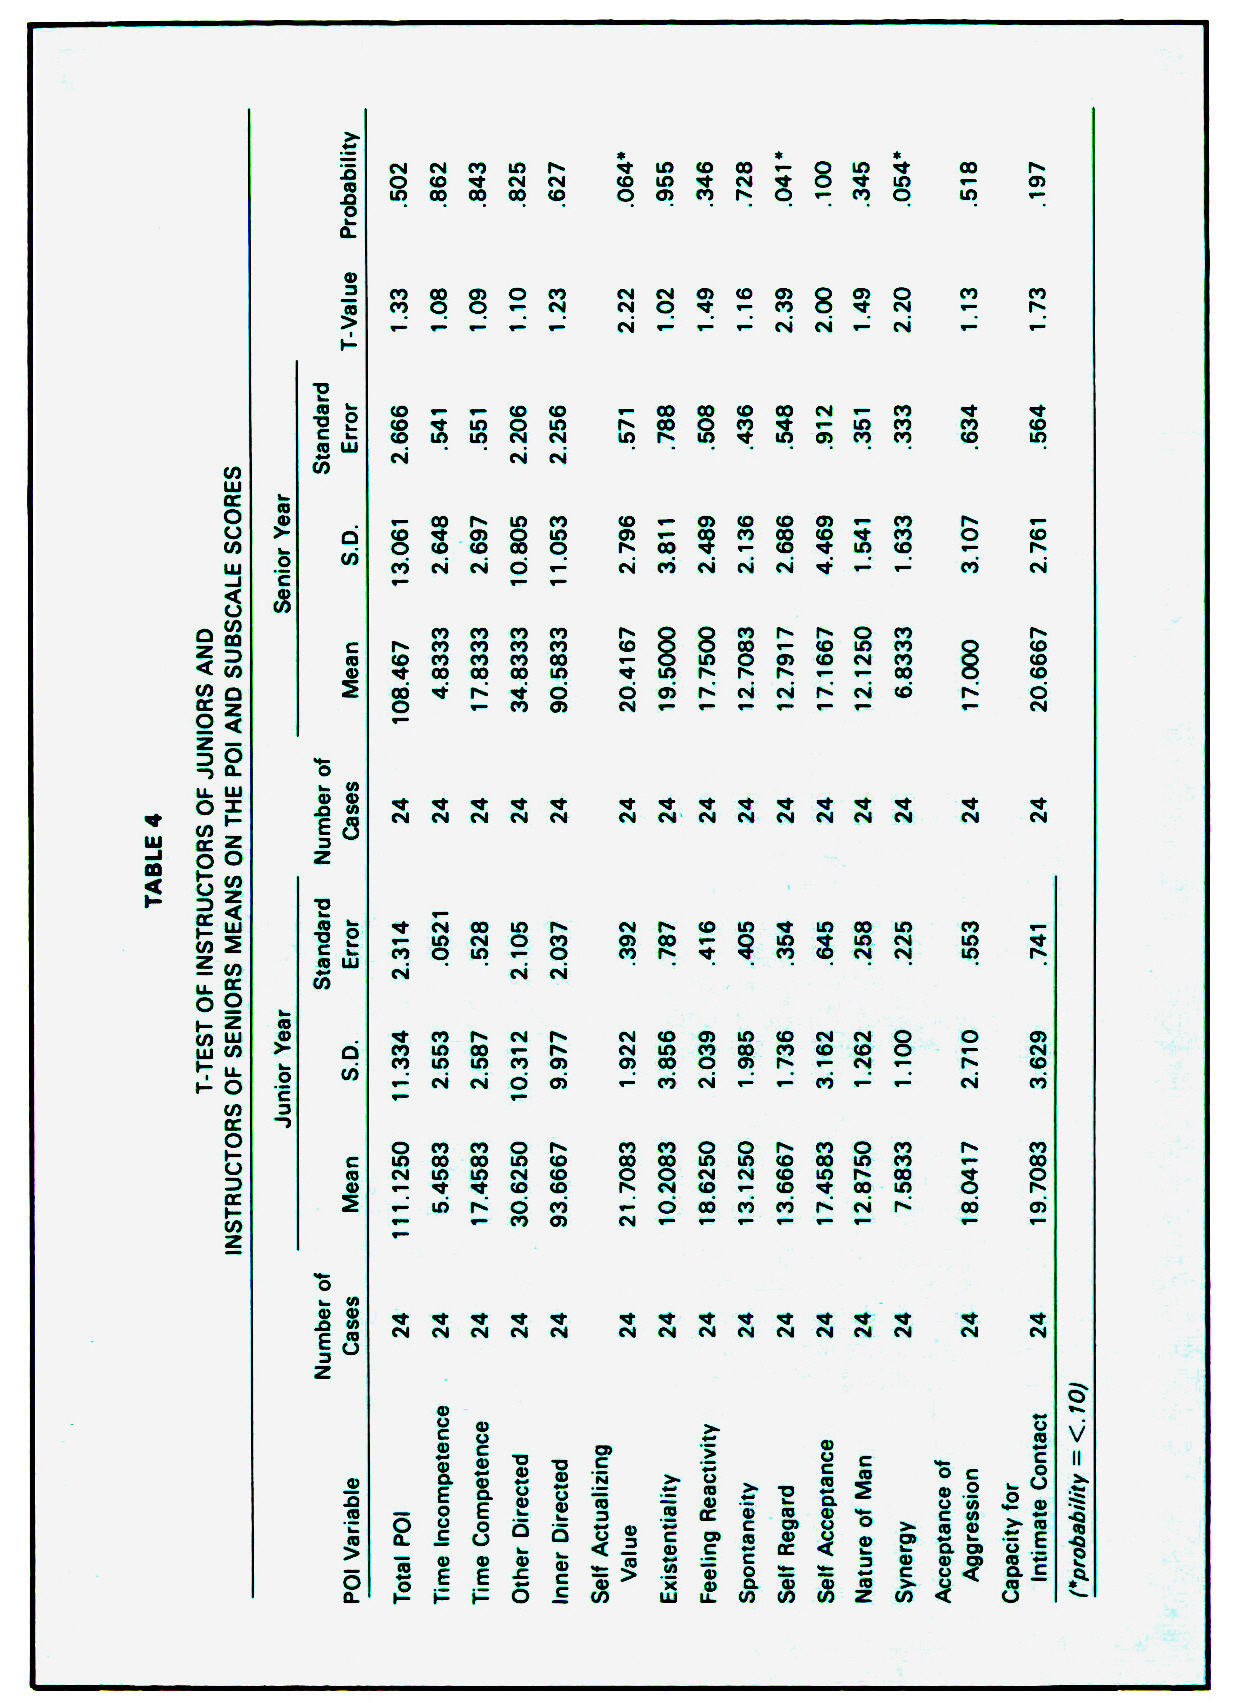 TABLE 4T-TEST OF INSTRUCTORS OF JUNIORS AND INSTRUCTORS OF SENIORS MEANS ON THE P01 AND SUBSCALE SCORES